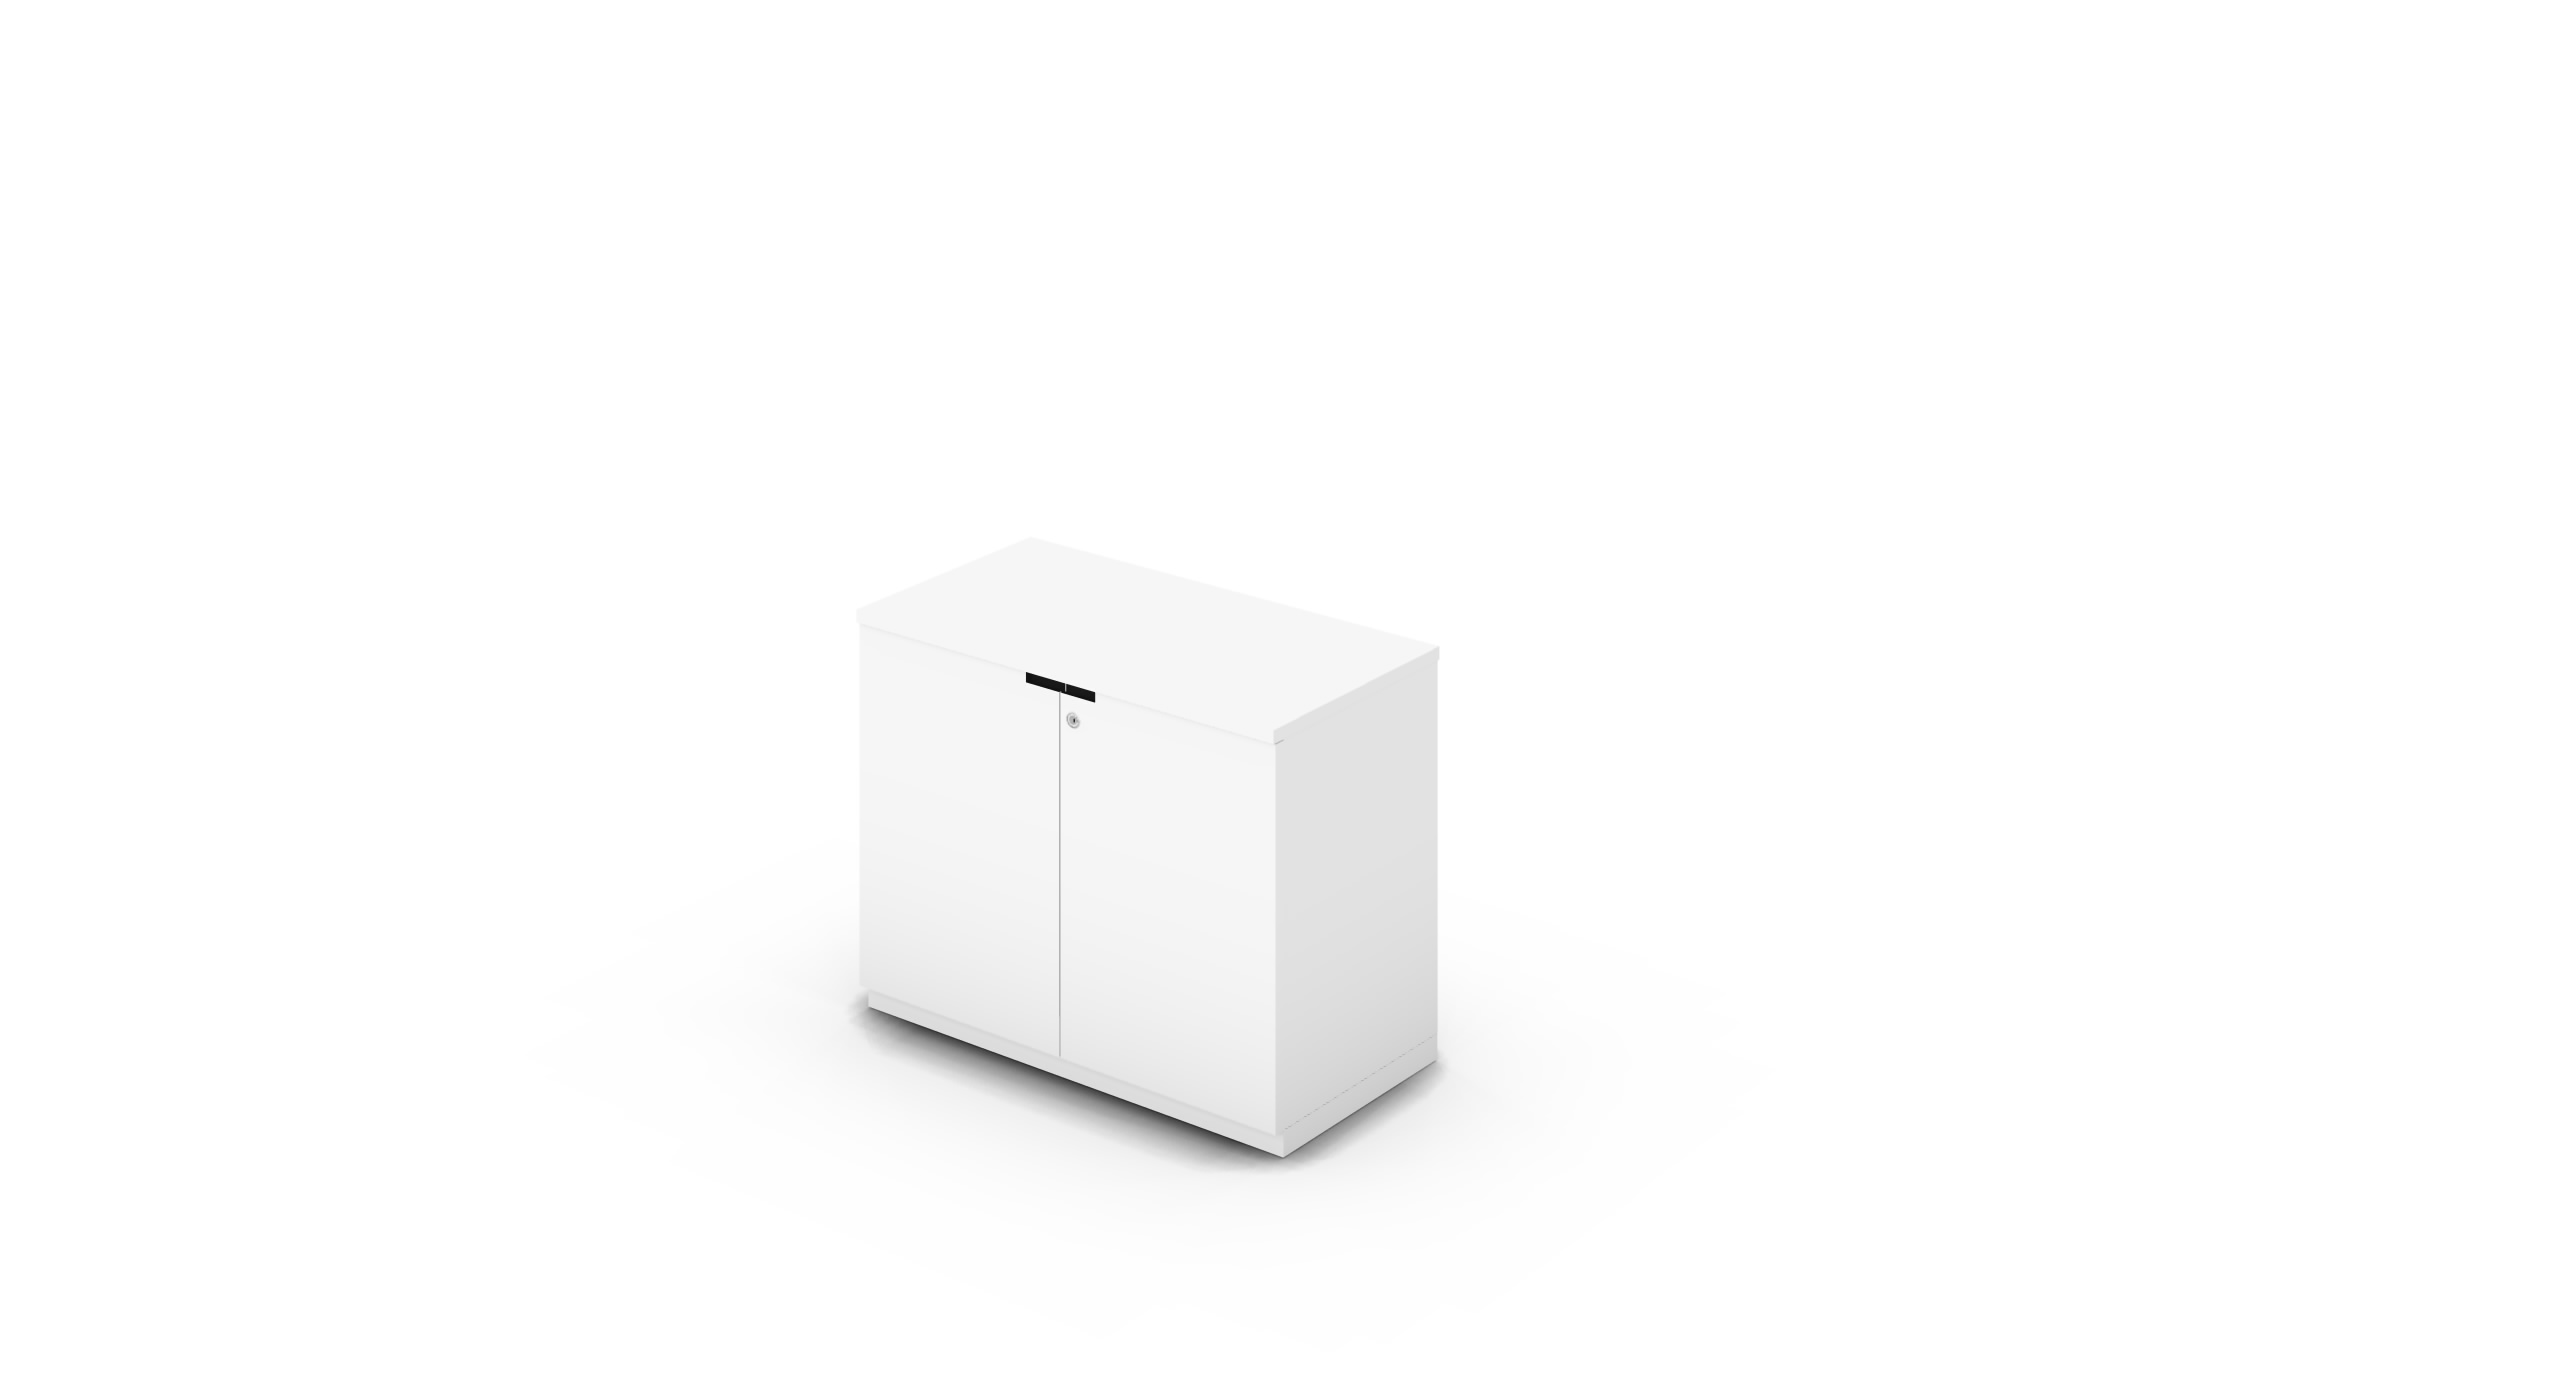 Cabinet_900x450x775_HD_White_CutOut_WithCylinder